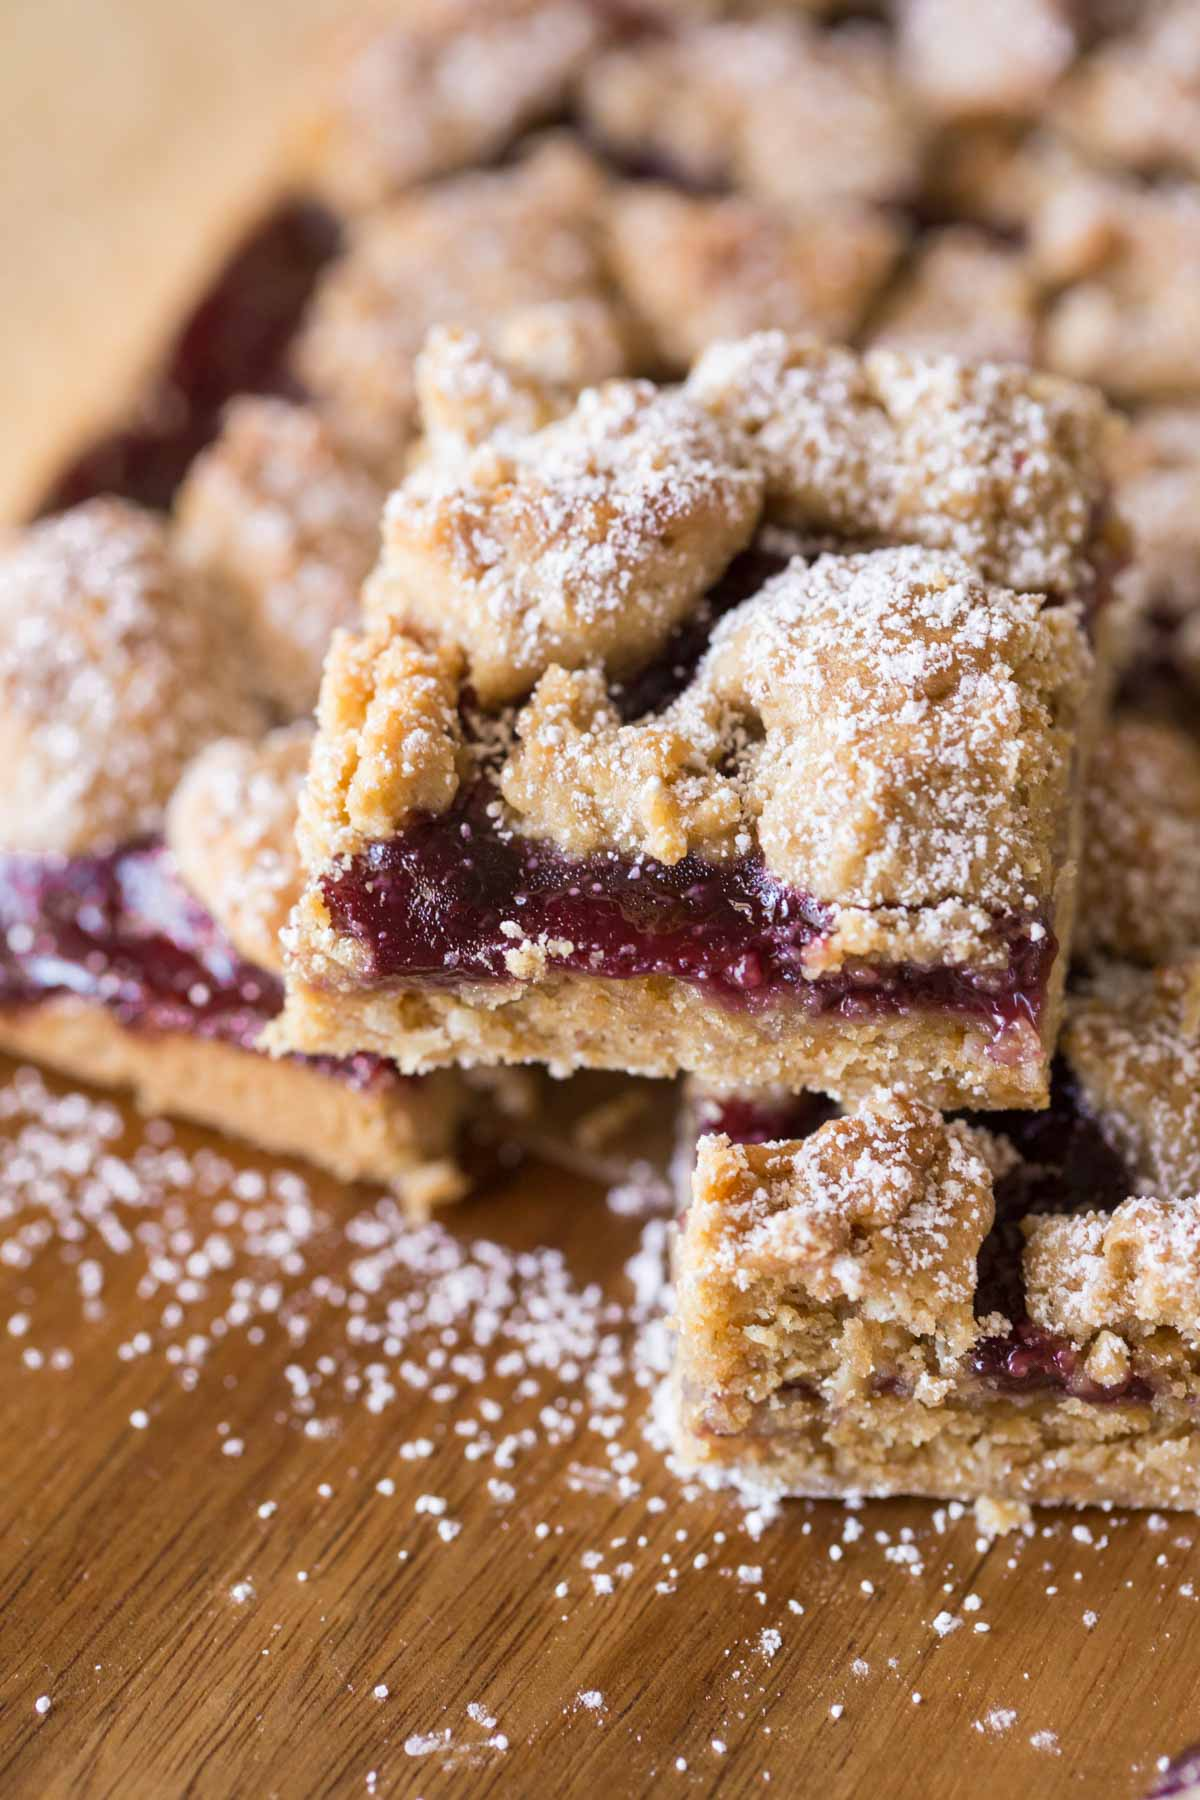 Peanut Butter and Jelly Oat Bars dusted with powdered sugar.